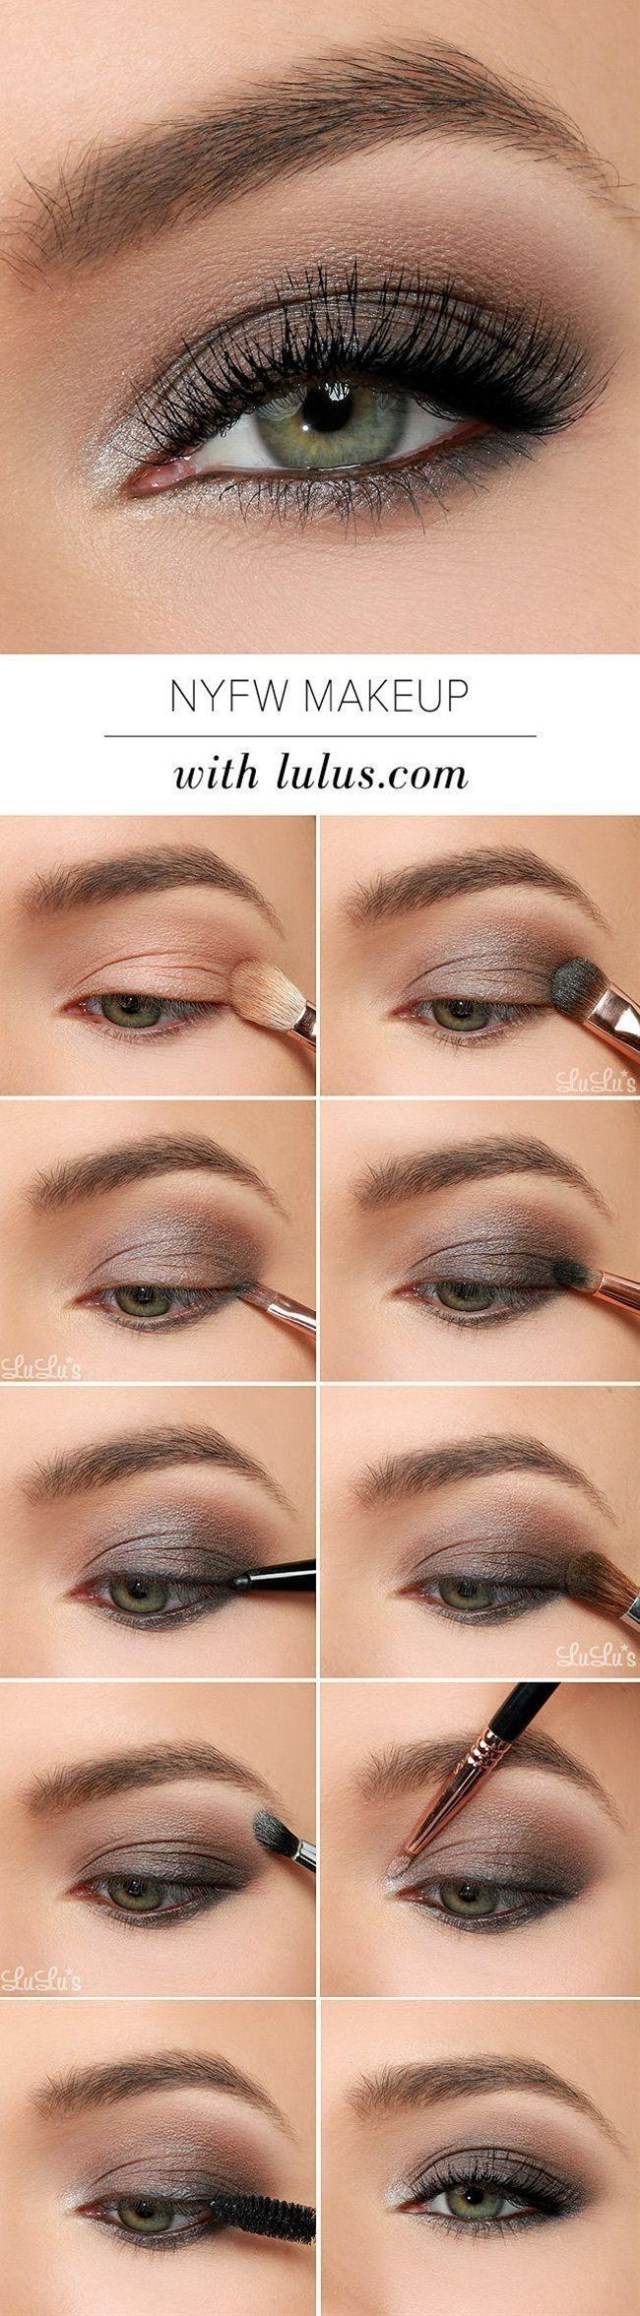 Black And Silver Eye Makeup This Nyfw Inspired Eye Makeup Tutorial Uses Gray Black And